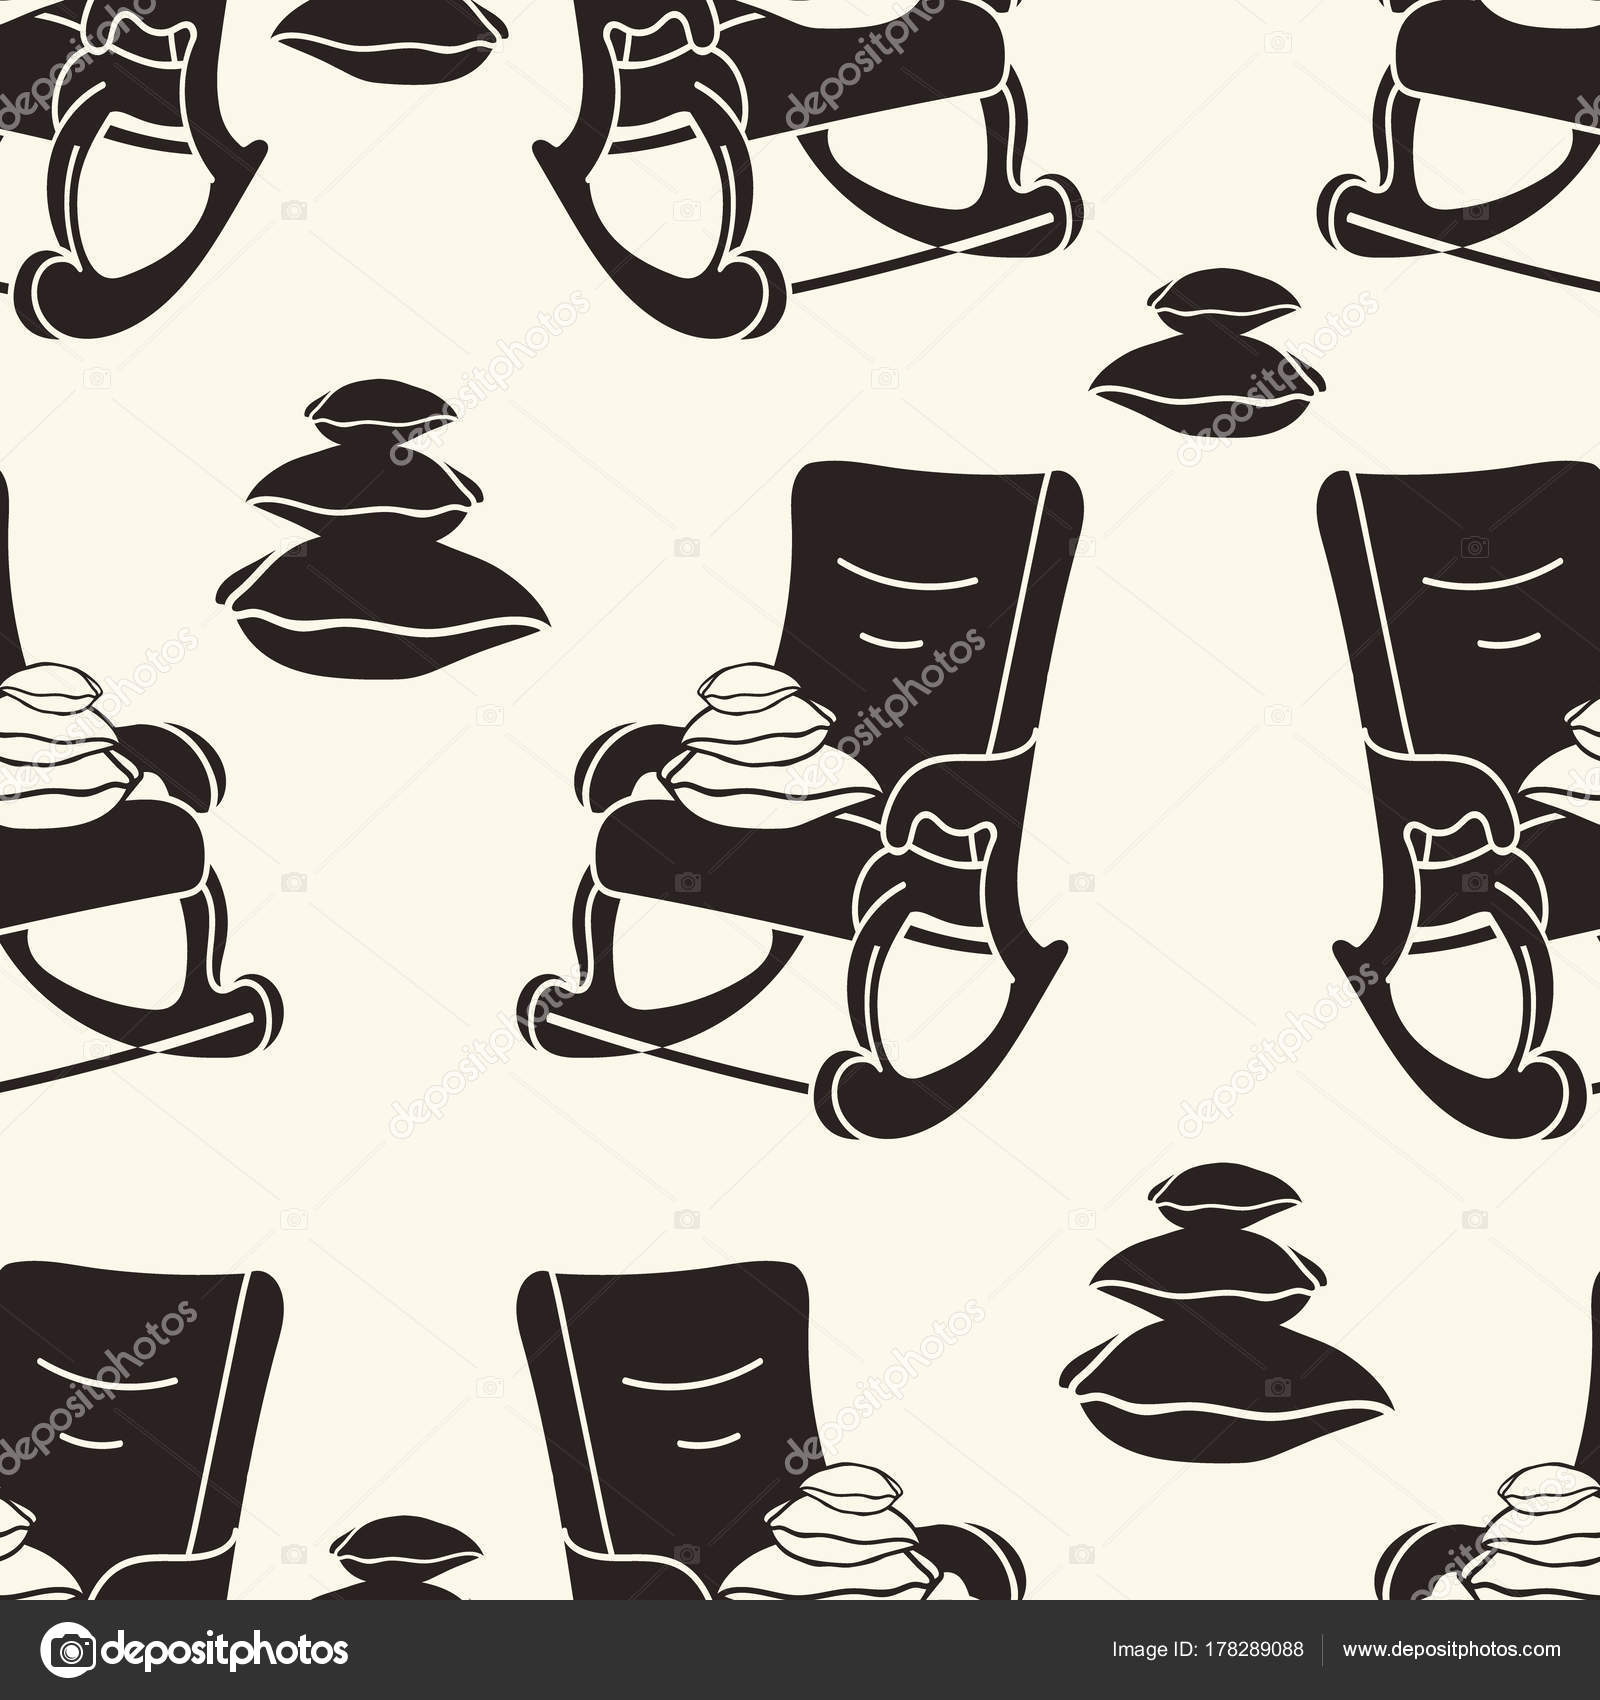 Rocking Chair Pillows Vector Seamless Pattern Rocking Chair Print Minimal U2014  Stock Vector